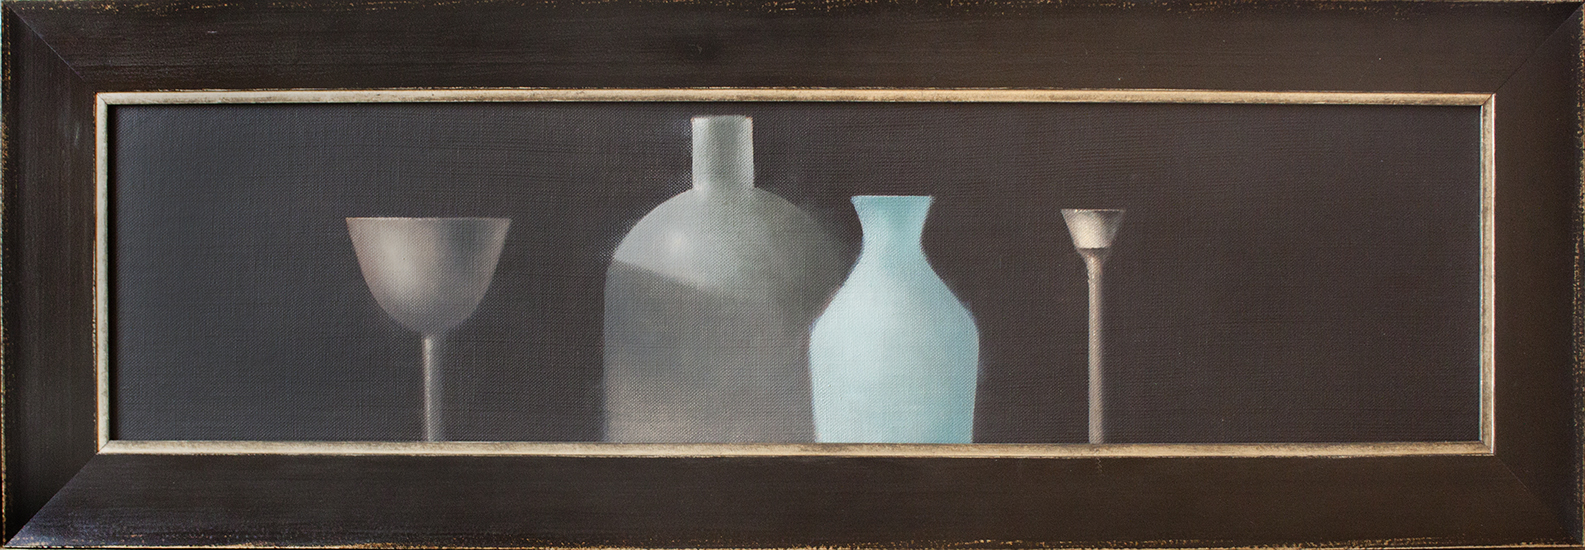 "Four Vessels - 48"" x 12"" - oil on panel"